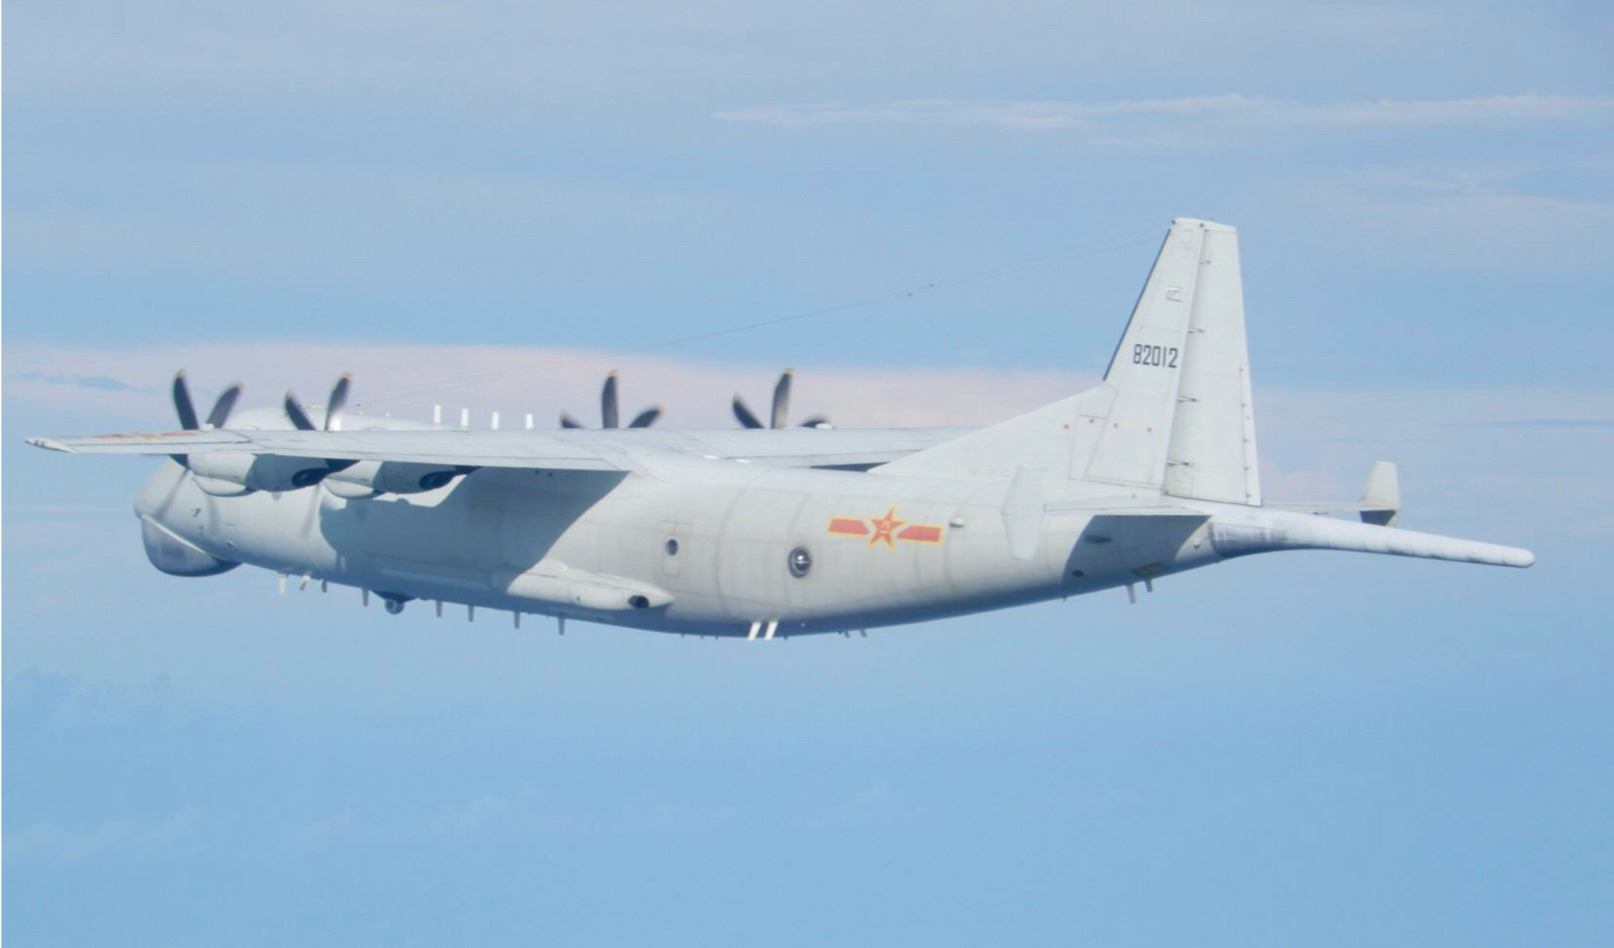 Chinese Airforce anti submarine plane. This Yun-8 is modelled on an Antonov model of the former Soviet Union. Taiwanese authorities say they faced several incursions by Yun-8 type of planes over the past months.